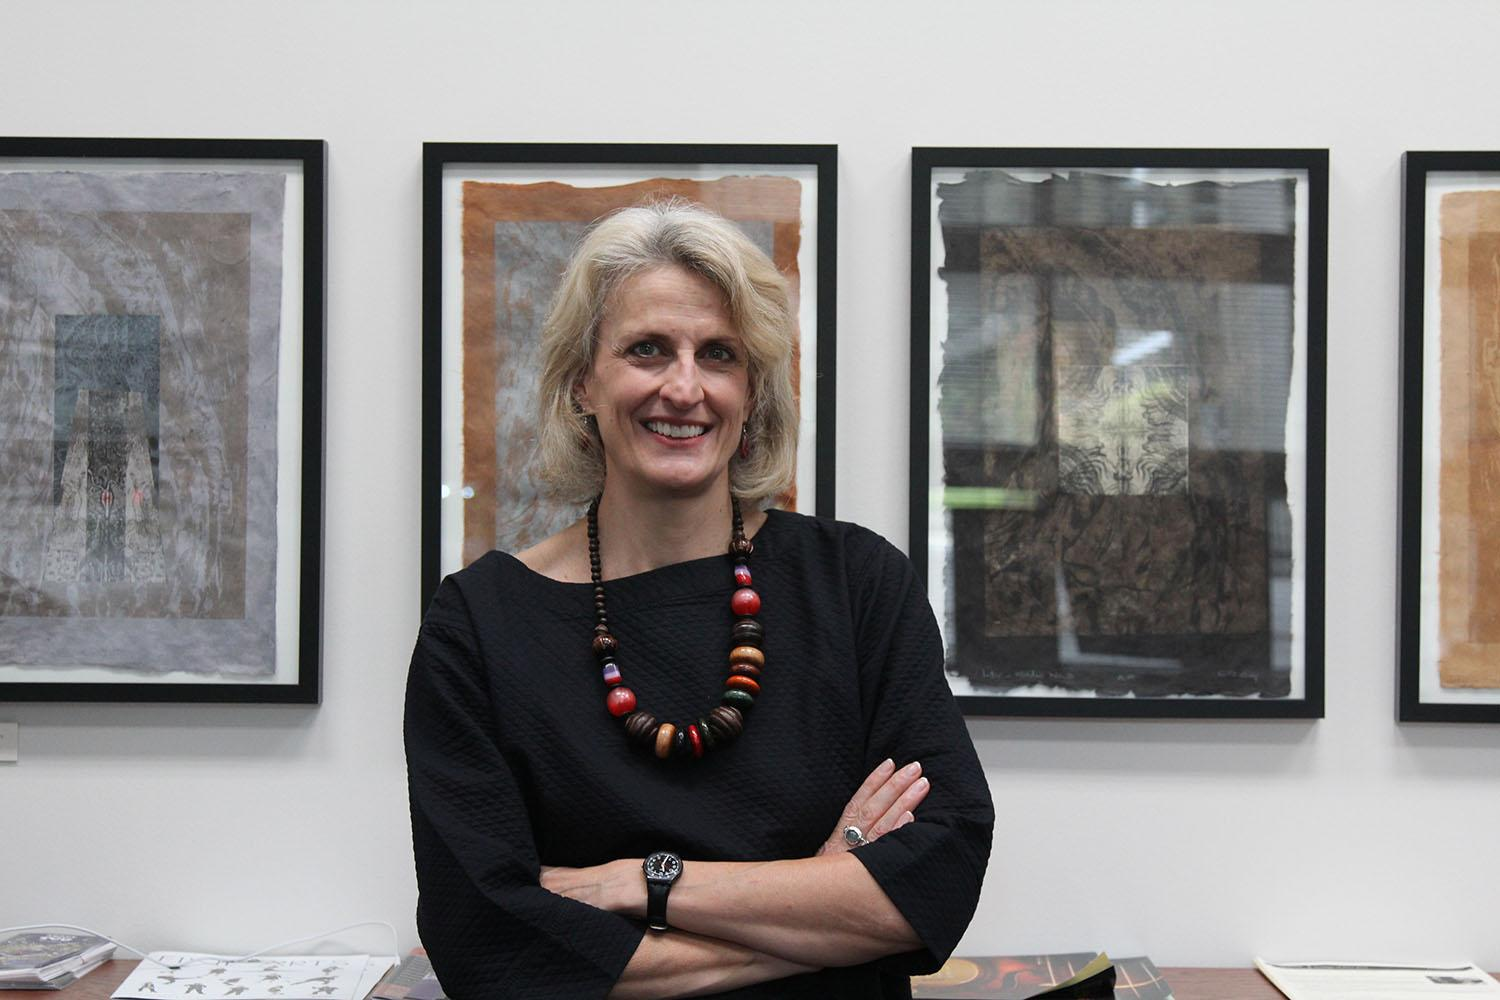 One of the newest deans on campus - Dean Anne Helmreich of the College of Fine Arts